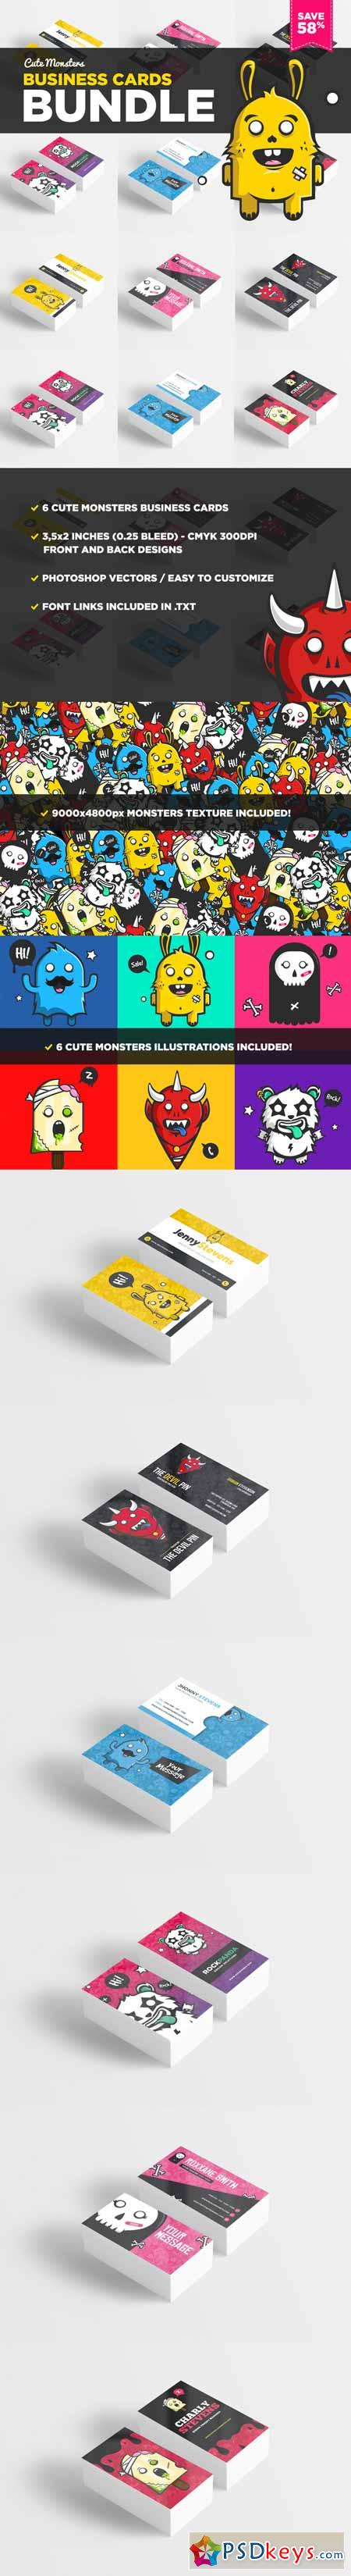 Cute Monsters Business Card Bundle 363400